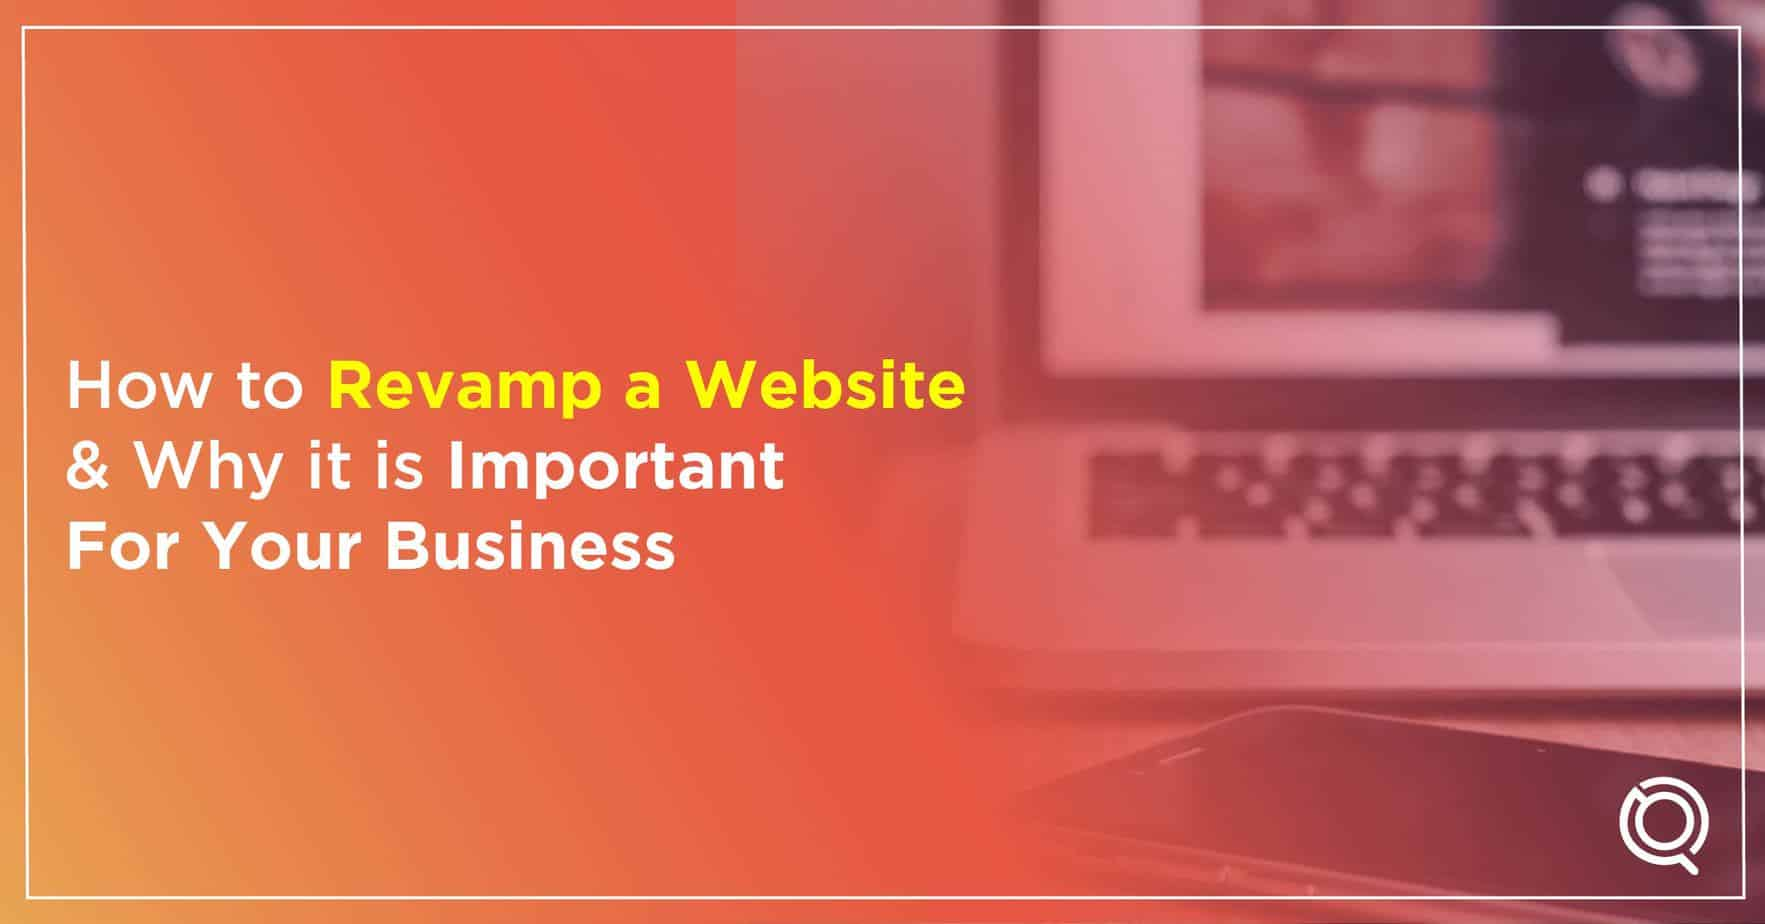 How to Revamp a Website and Why it is Important for Your Business - One Search Pro Digital marketing Agency Malaysia